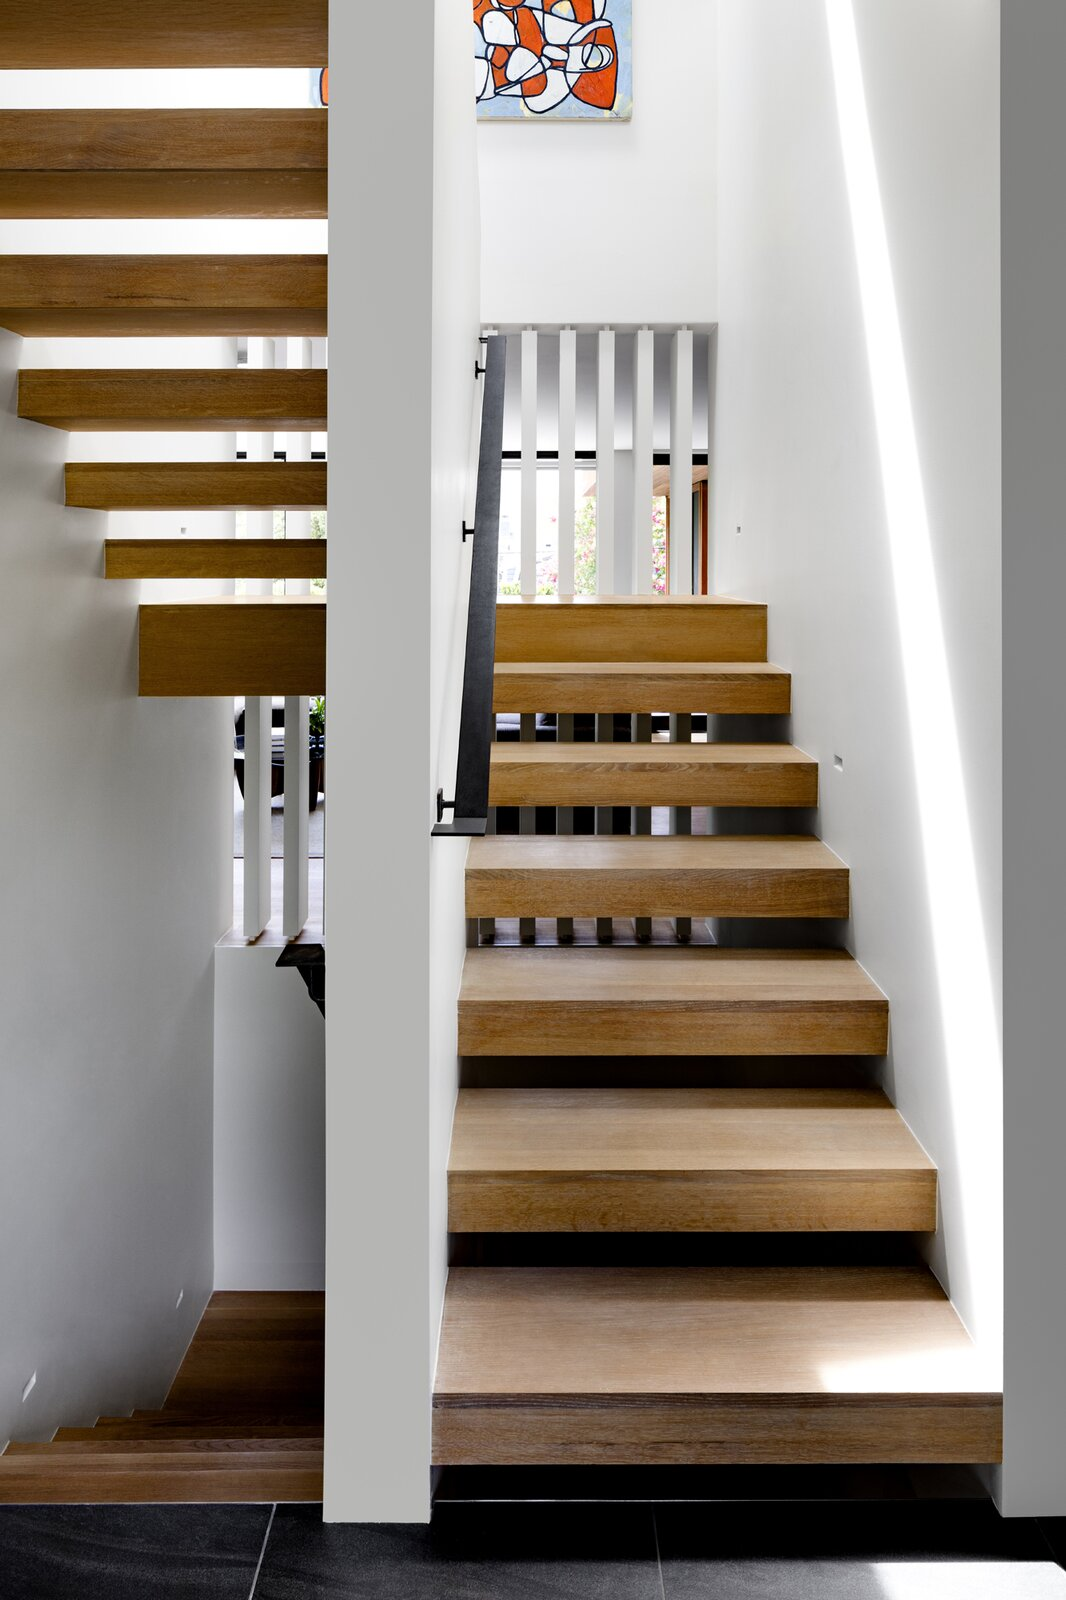 Stephenson House by Assembledge+ and Fowlkes Studio staircase